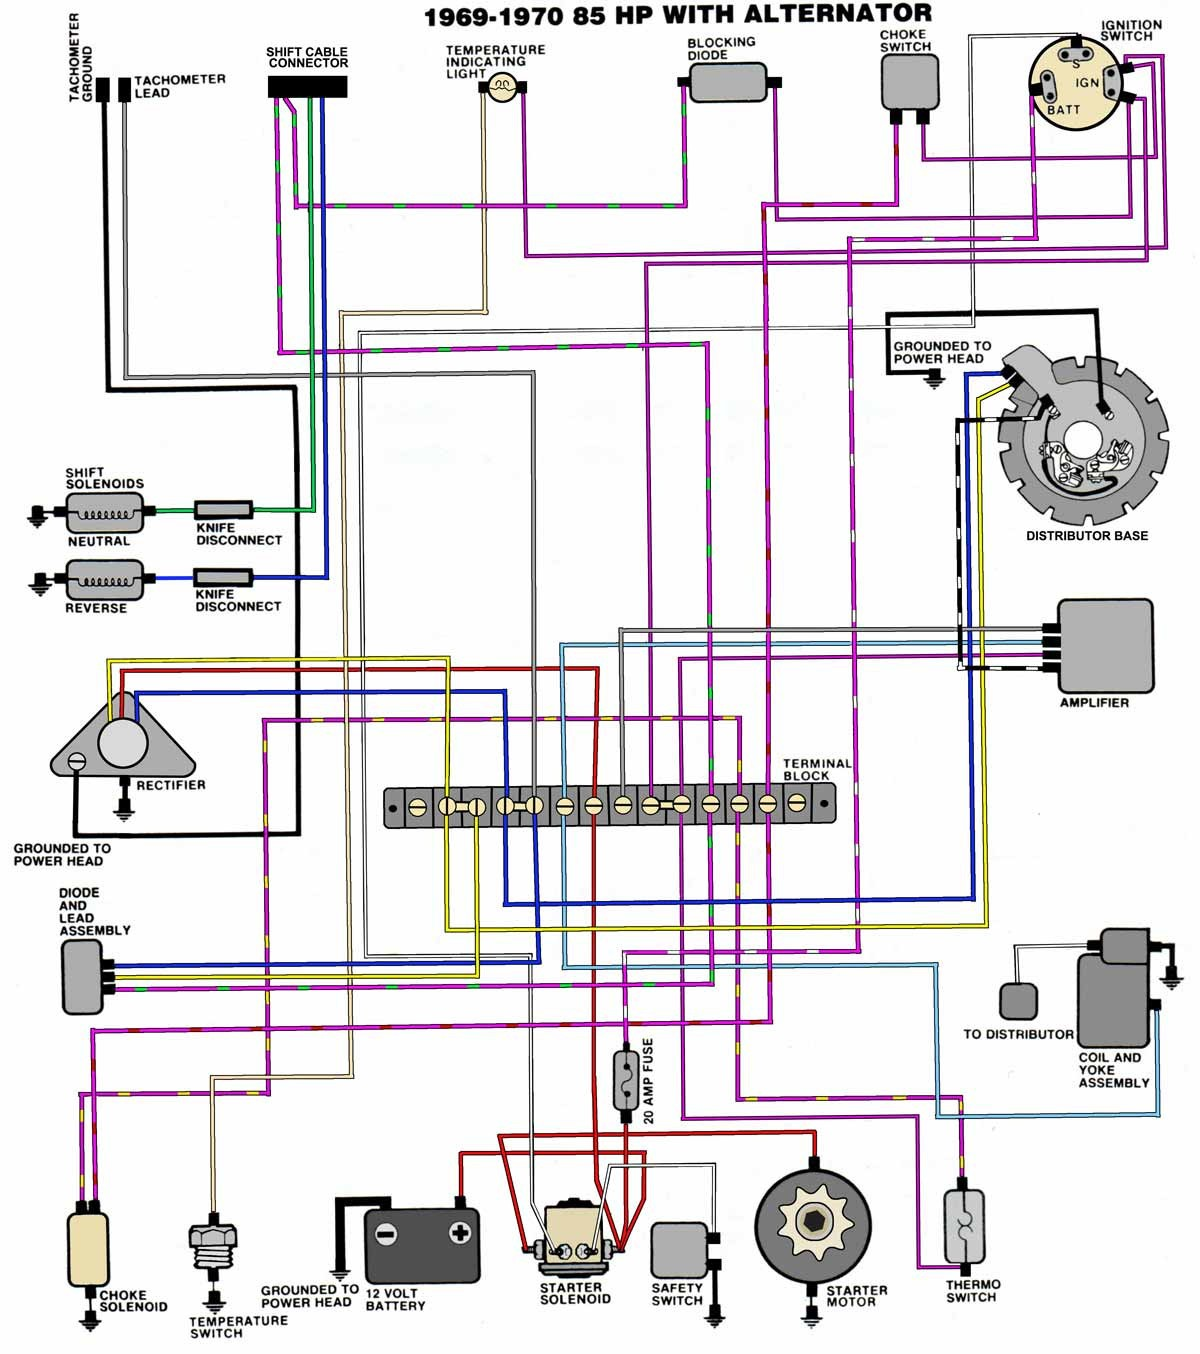 Evinrude Outboard Wiring Diagram On Wiring Diagram Besides 50 Hp ... ignition switch johnson wiring color codes Wiring Schematic Diagram